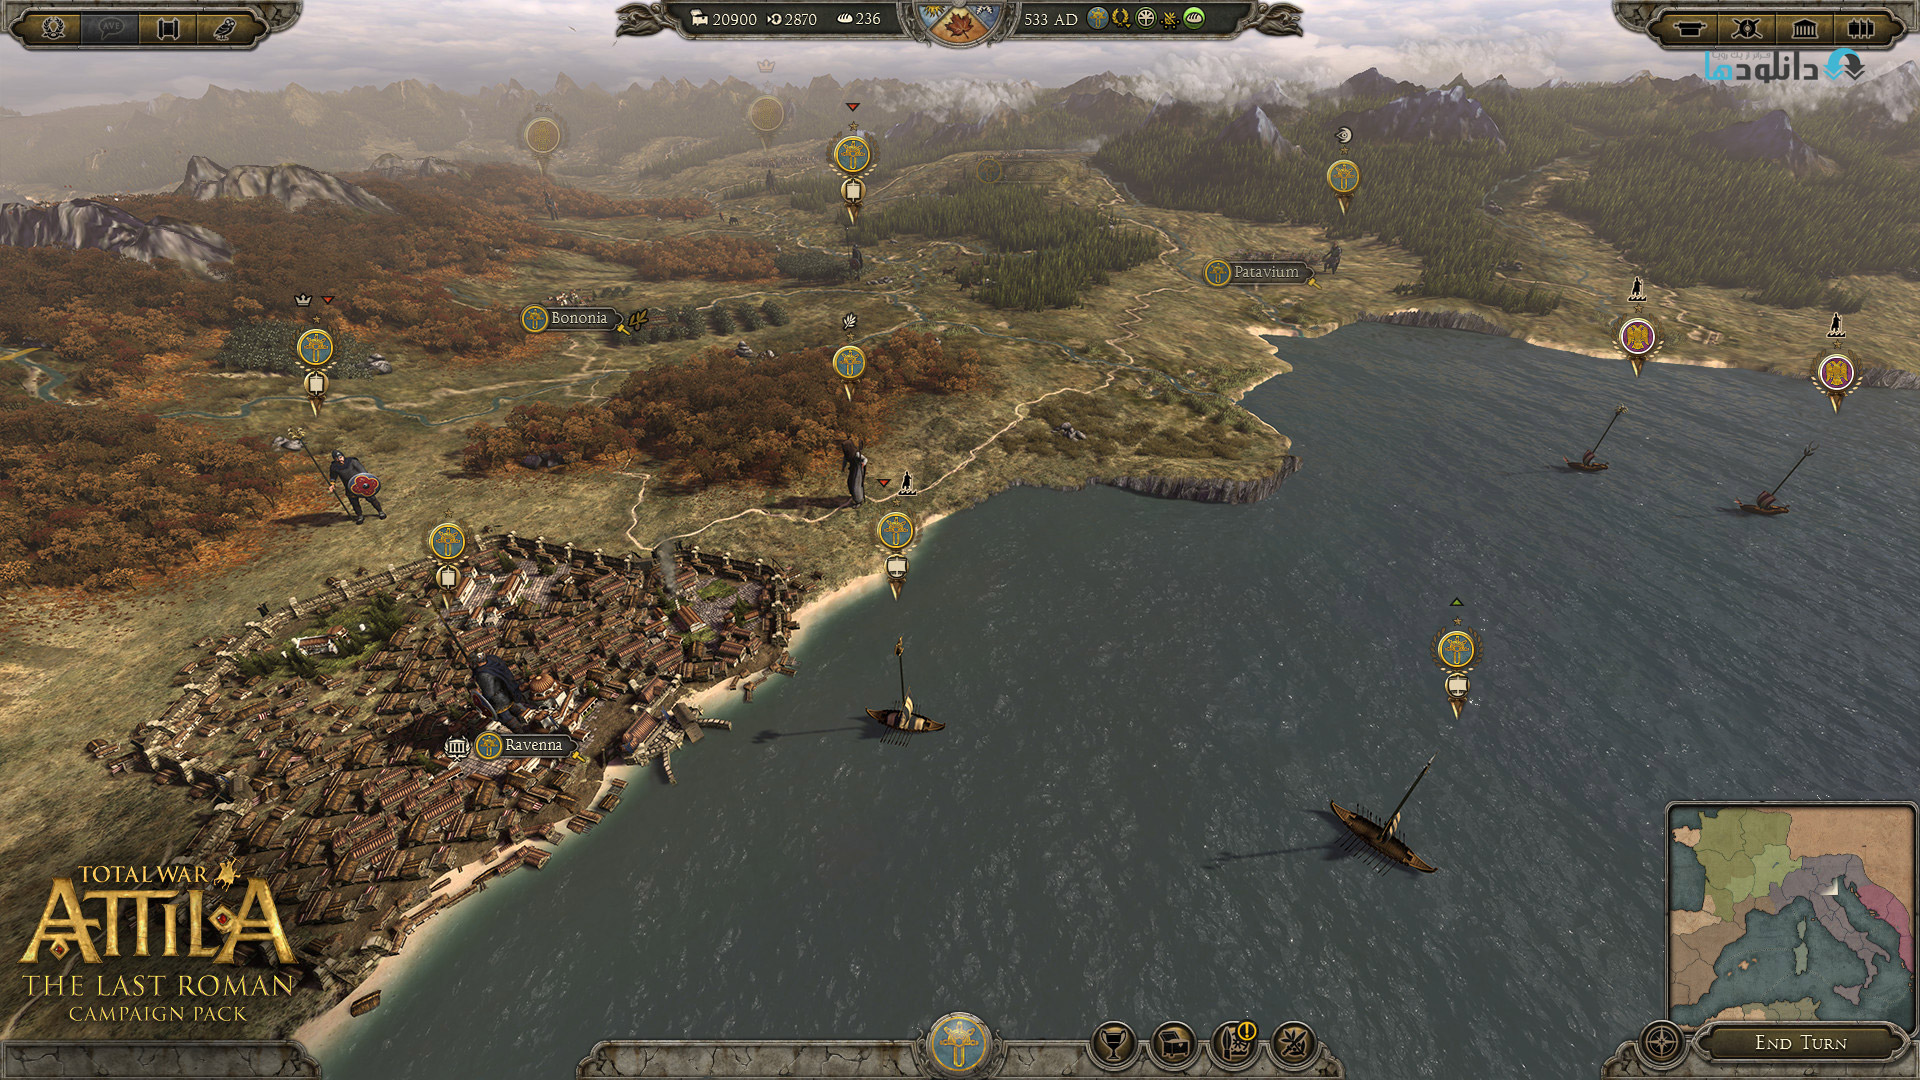 http://img5.downloadha.com/hosein/Game/June%202015/26/Total-War-ATTILA-The-Last-Roman-Campaign-Pack-screenshots-05-large.jpg